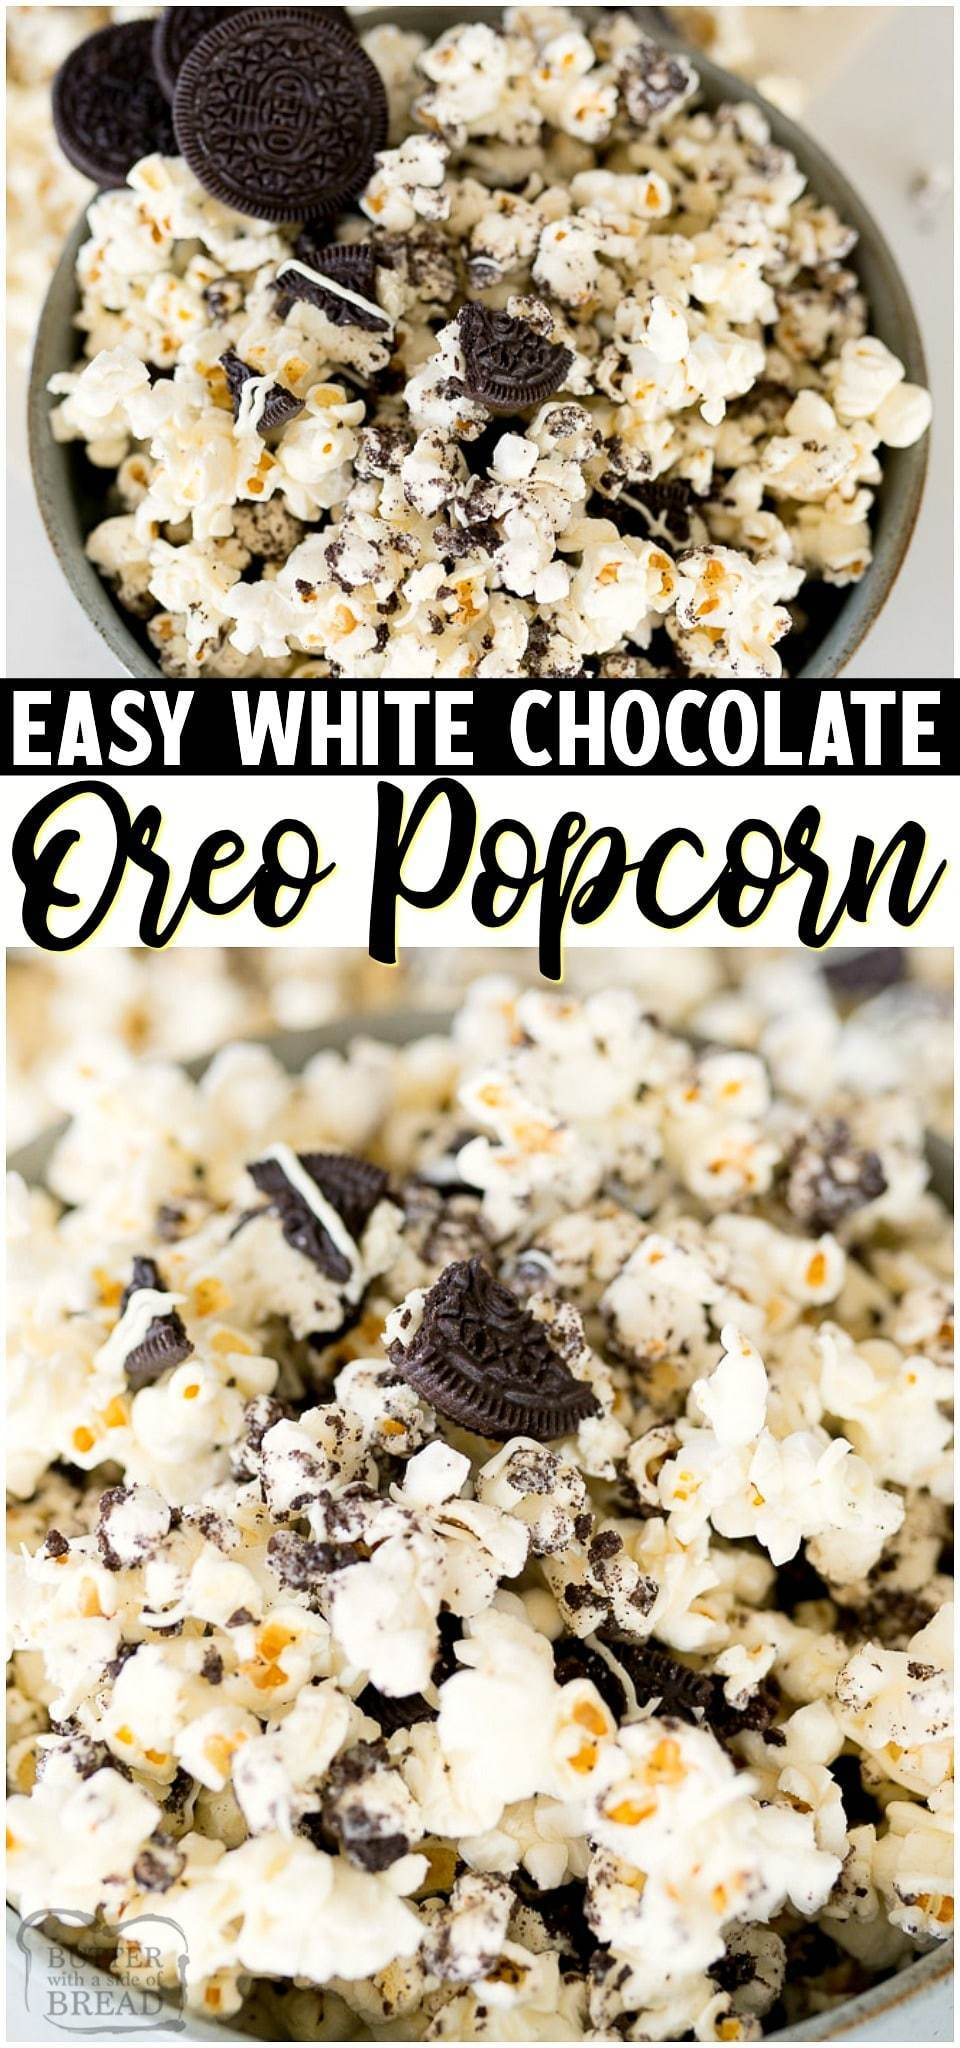 Easy OREO Popcorn is a dessert popcorn made in minutes with just 3 ingredients! Popcorn, white chocolate & Oreos combine for an amazing cookies & cream treat! It's a must-have dessert for Oreo lovers!